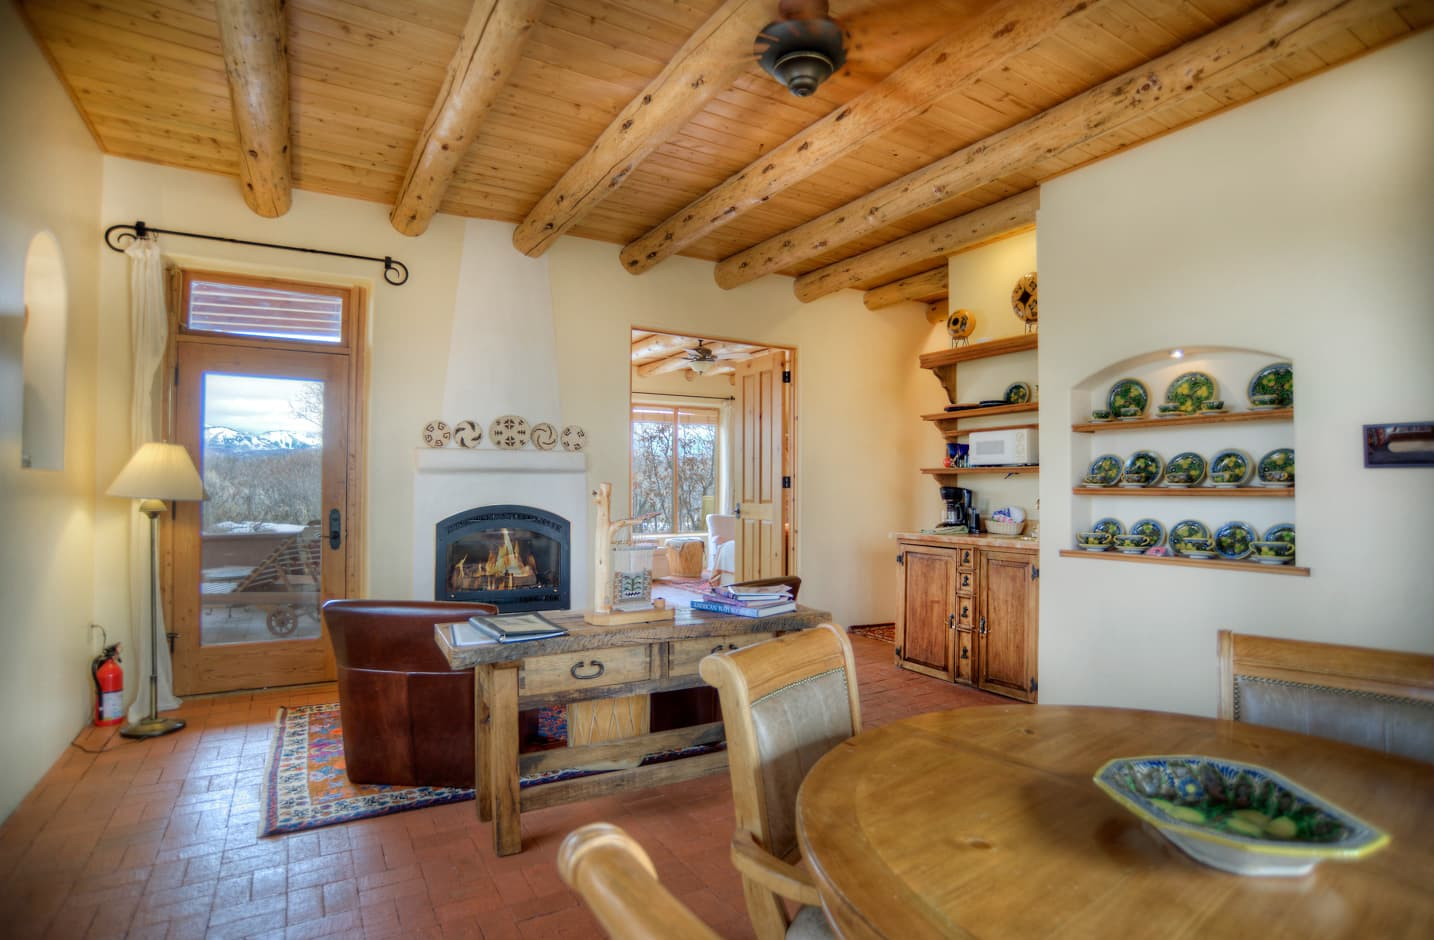 Fireplace and dining table in the Cedar Casita